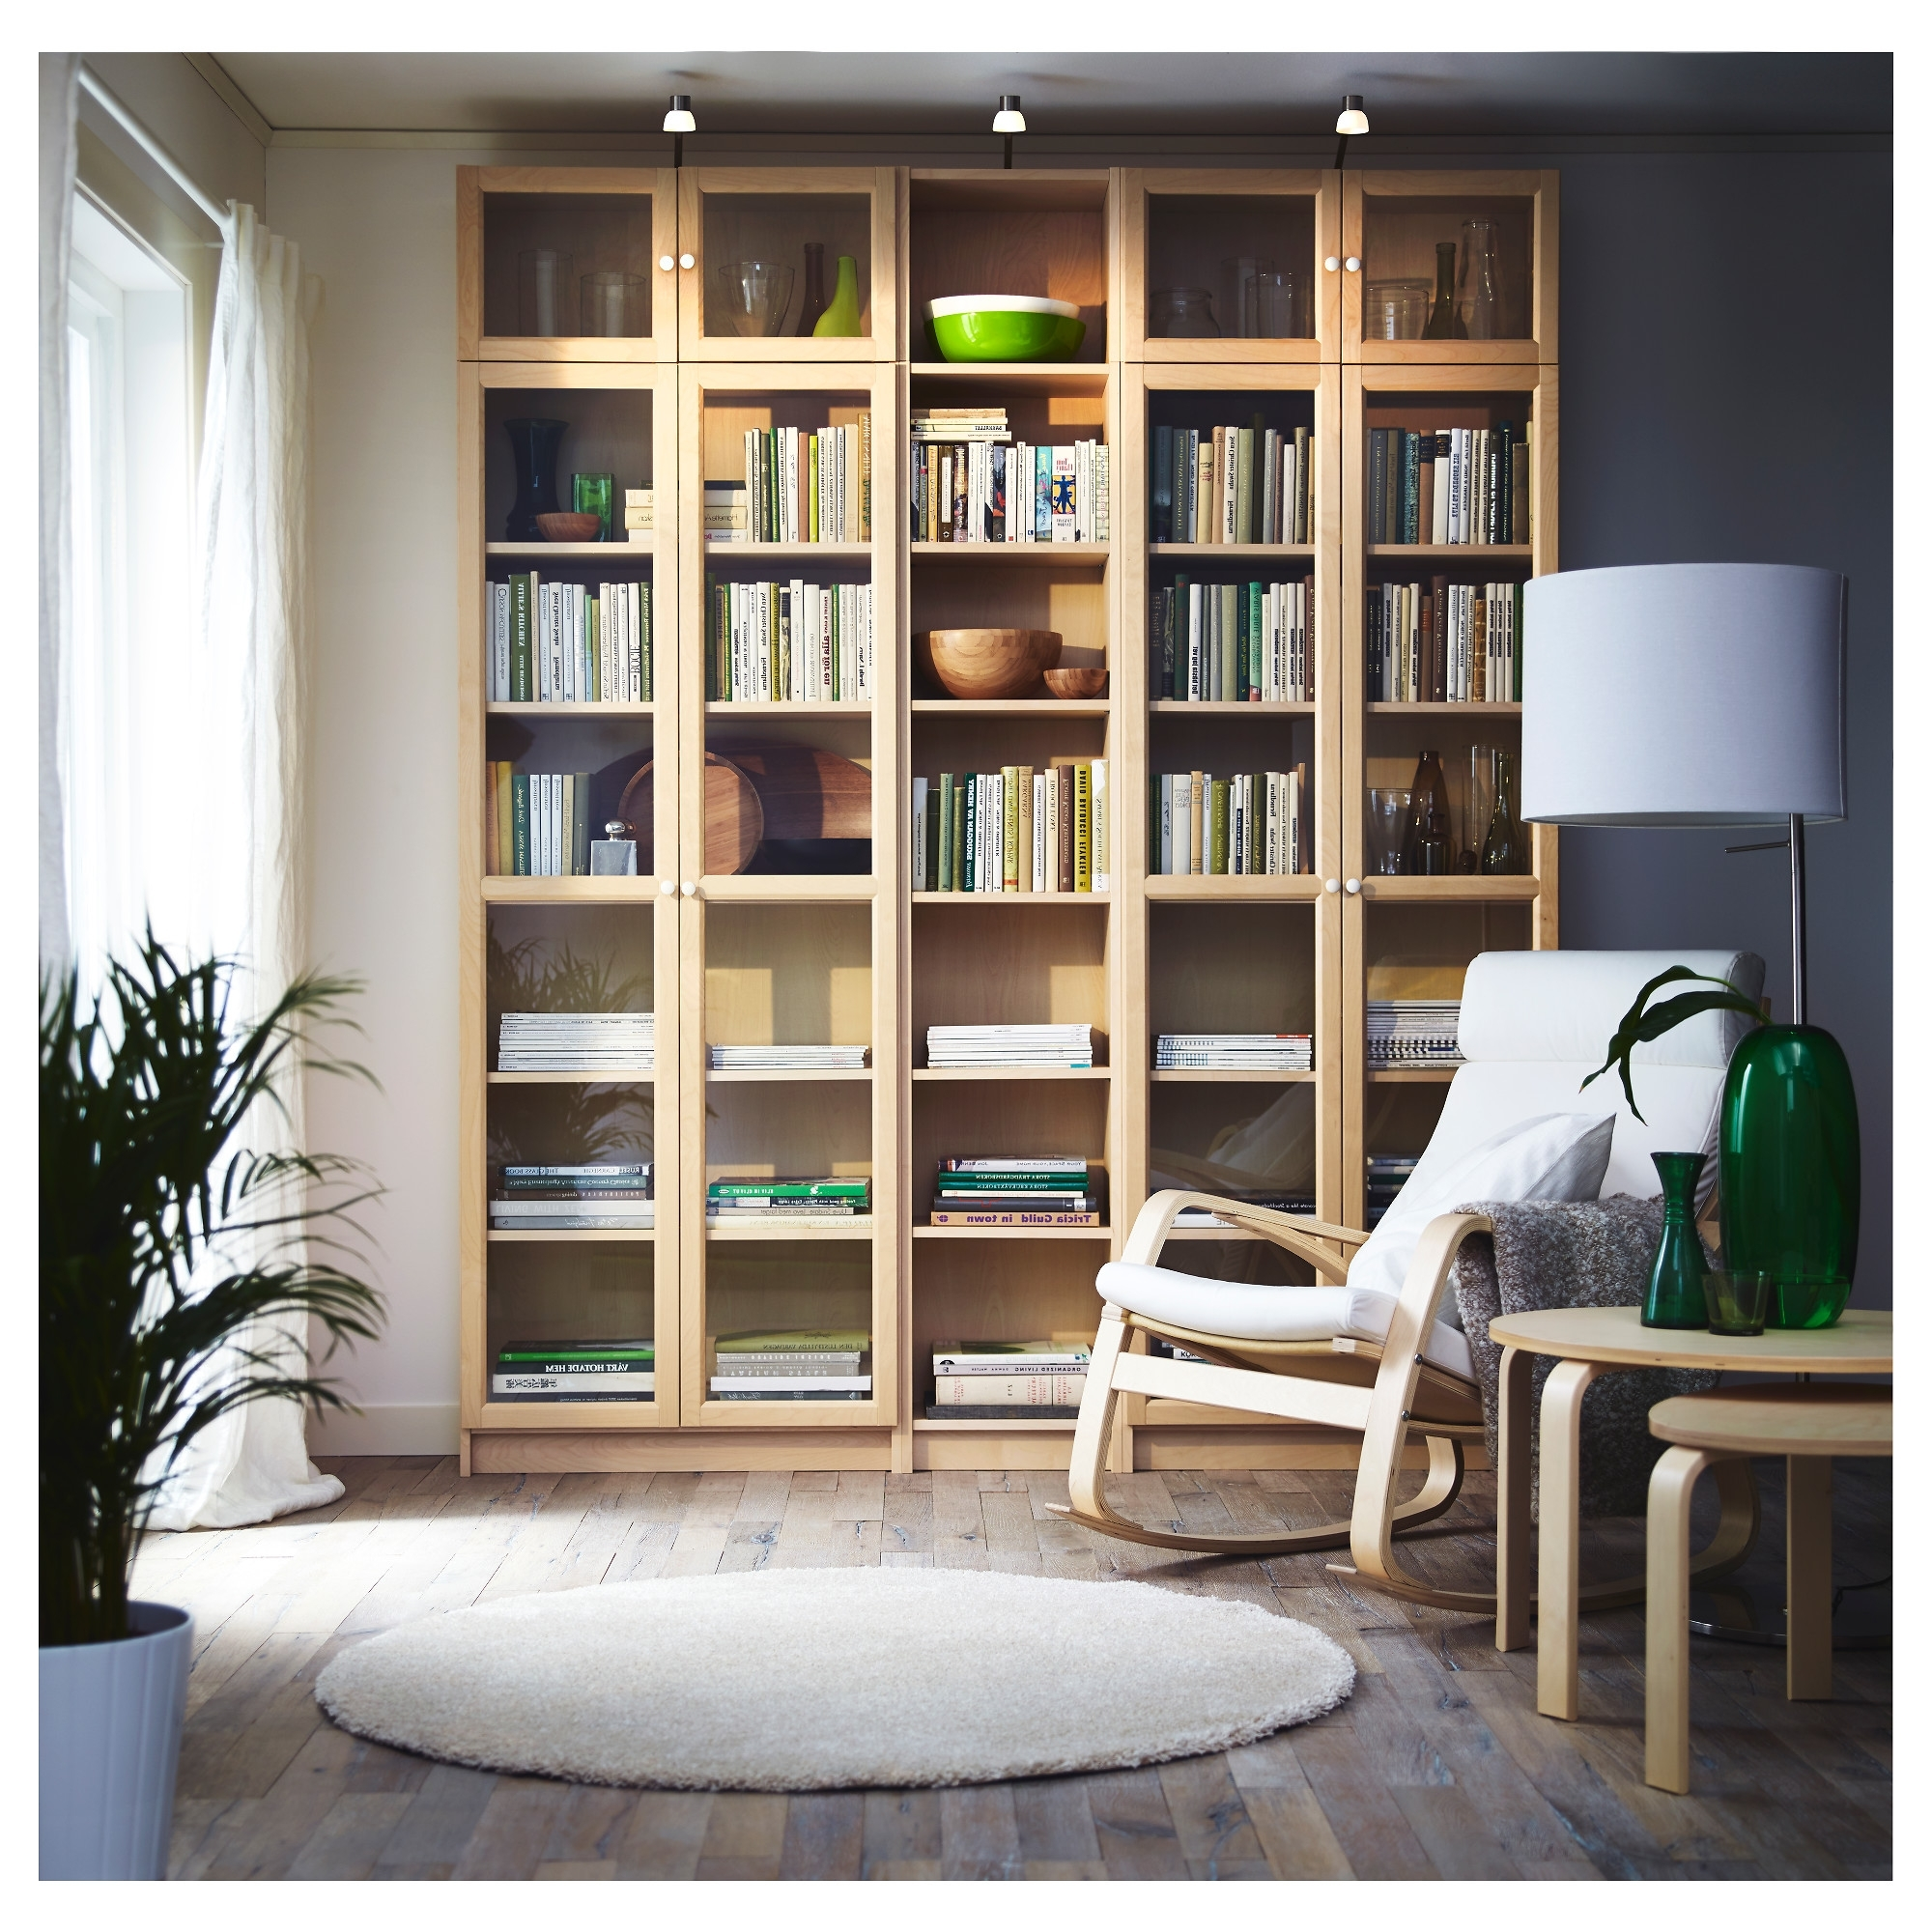 Ikea Billy Bookcases Intended For Trendy Billy / Oxberg Bookcase – Birch Veneer – Ikea (View 11 of 15)